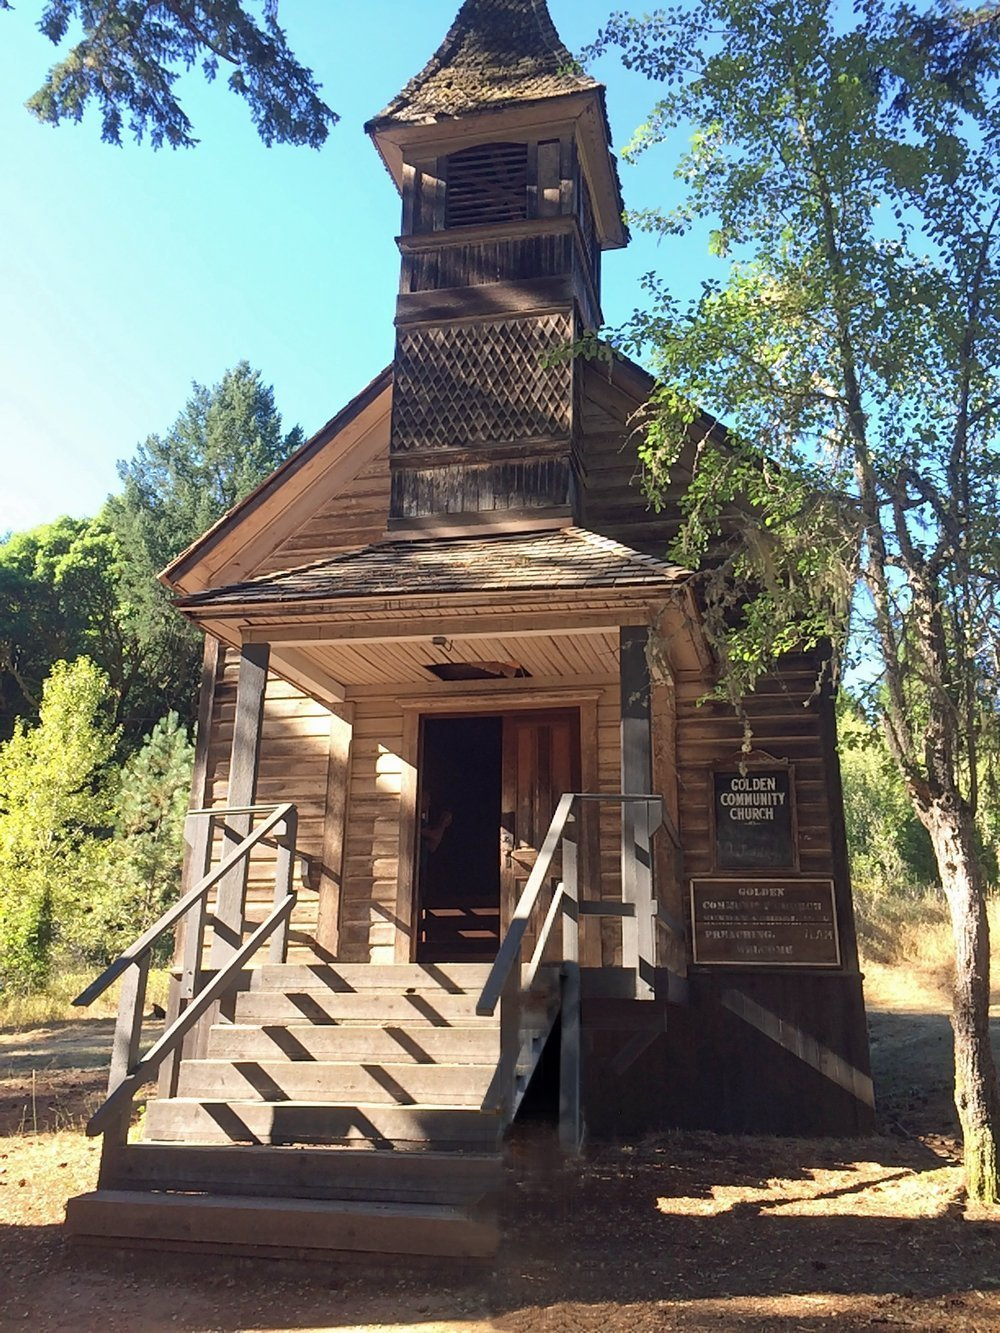 Church at Golden, Oregon